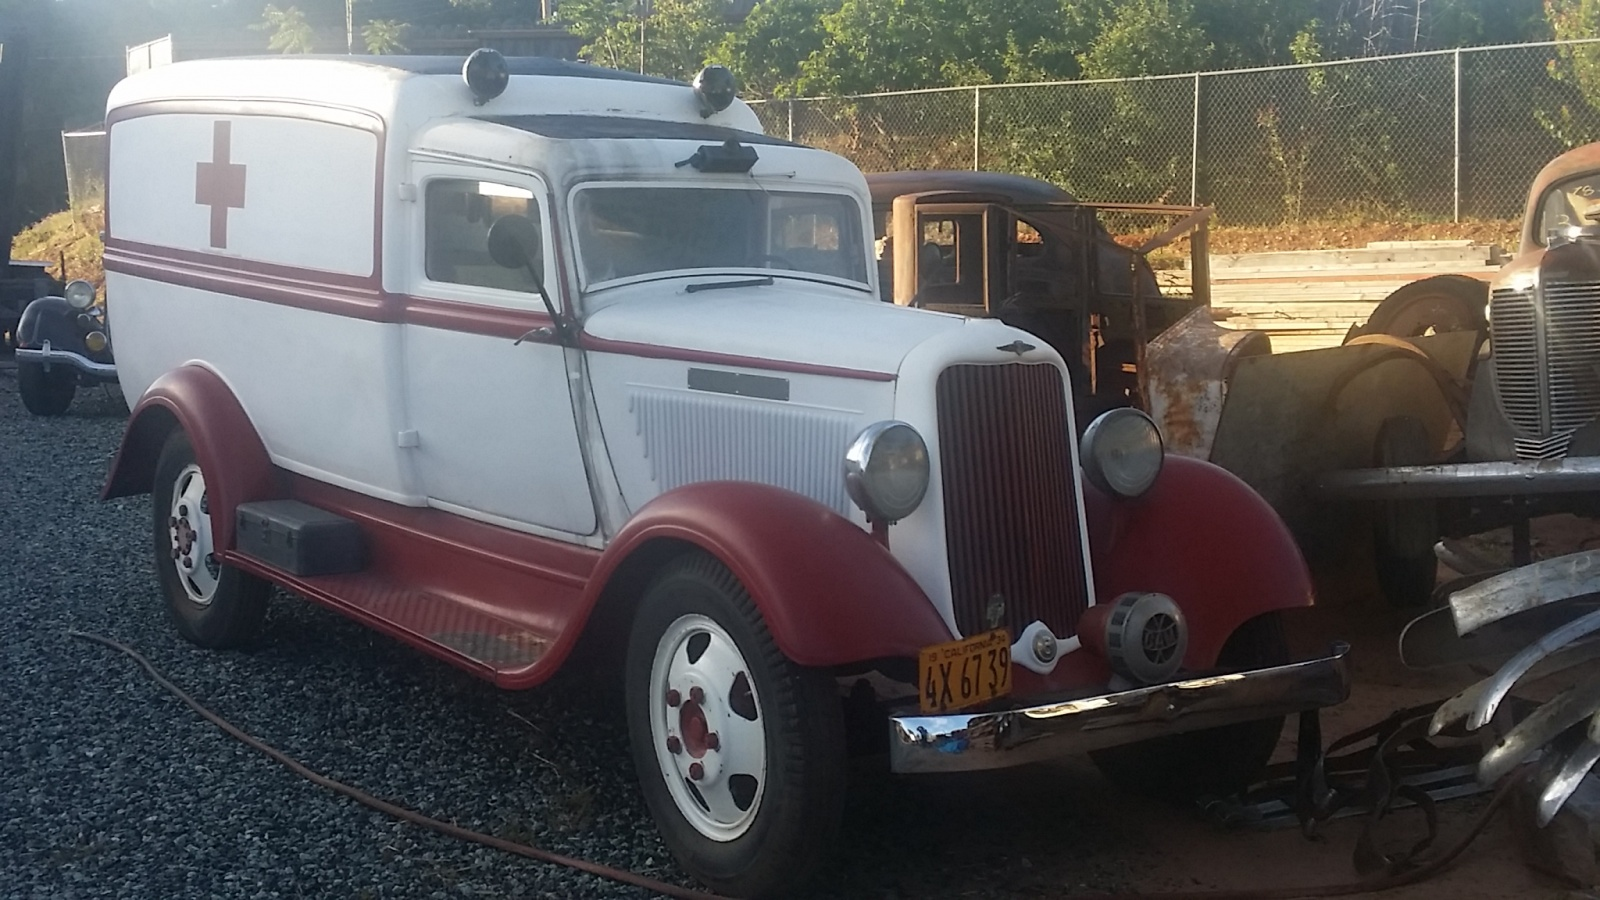 1935 Chevy Truck For Sale Craigslist - Best Car News 2019-2020 by